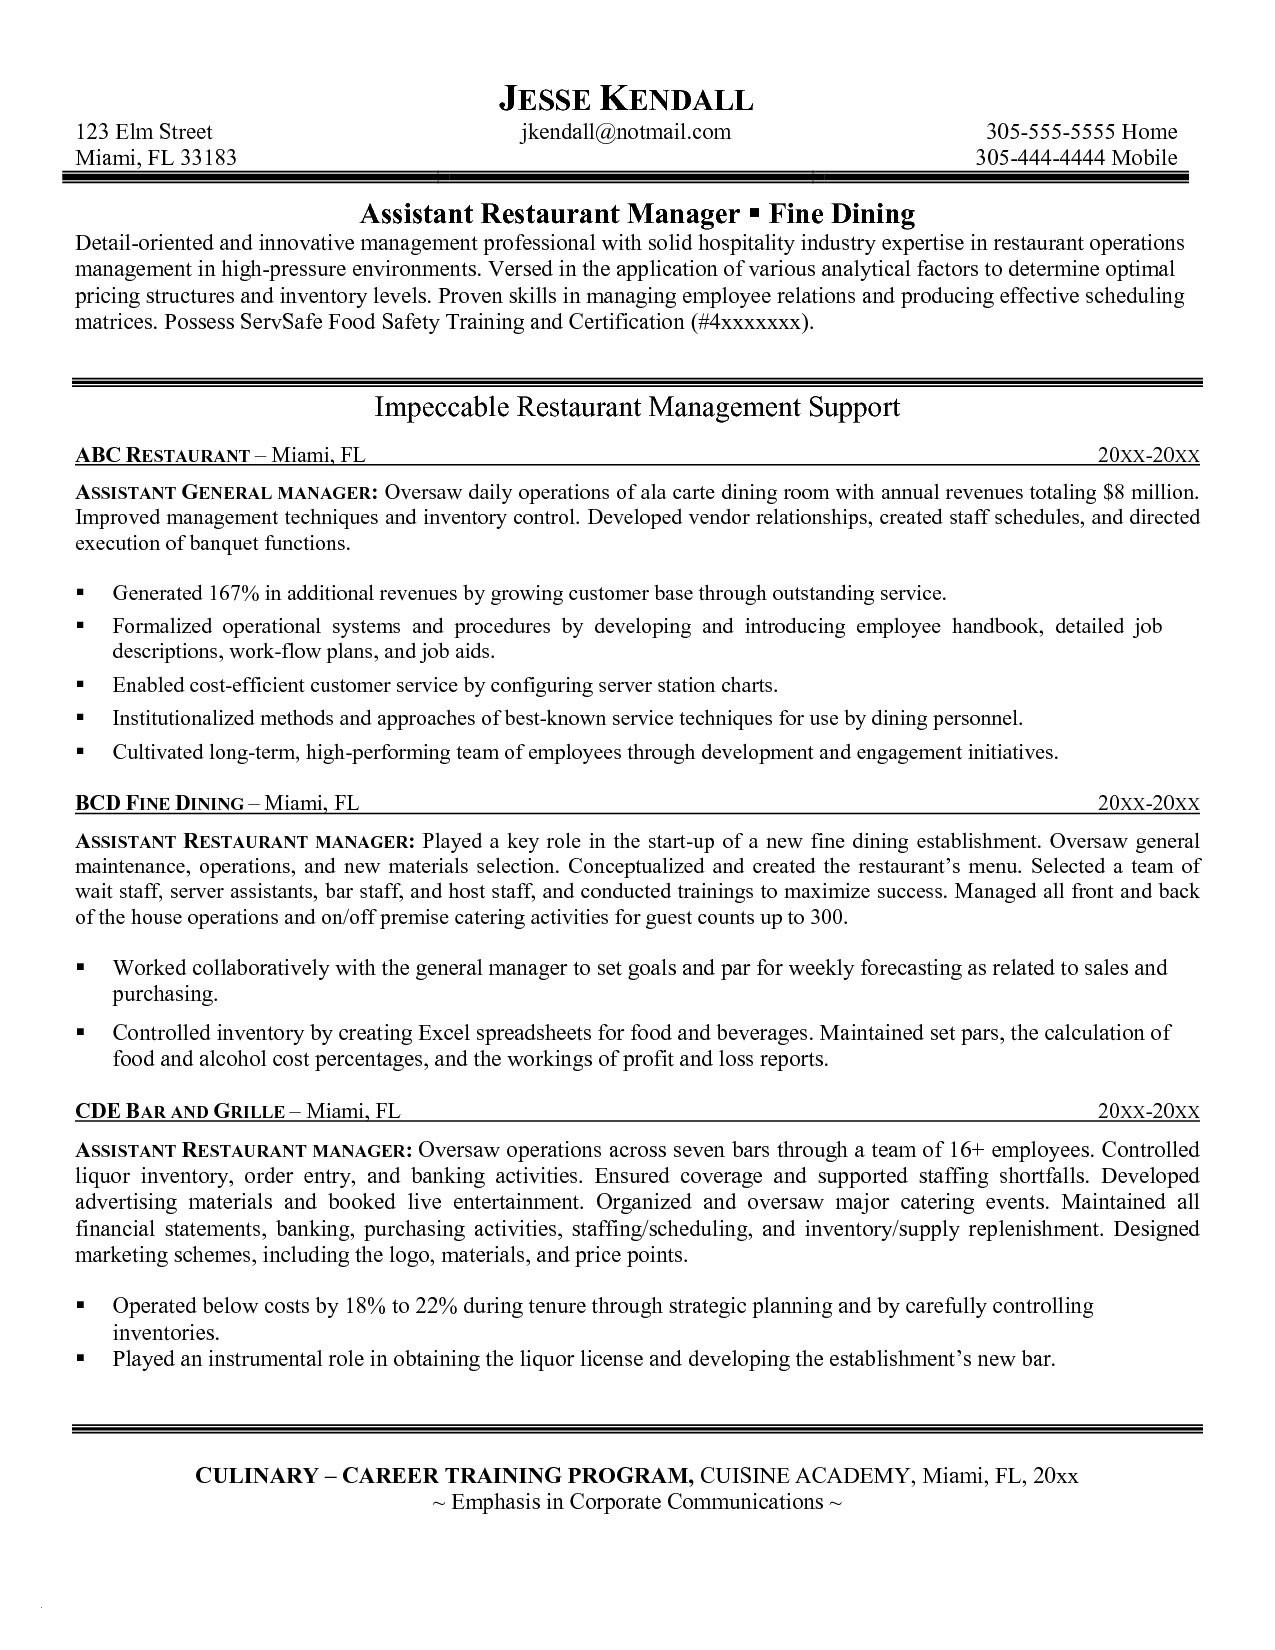 restaurant manager resume template example-Restaurant Manager Resume Template Unique Lovely Grapher Resume Sample Beautiful Resume Quotes 0d assistant 4-s